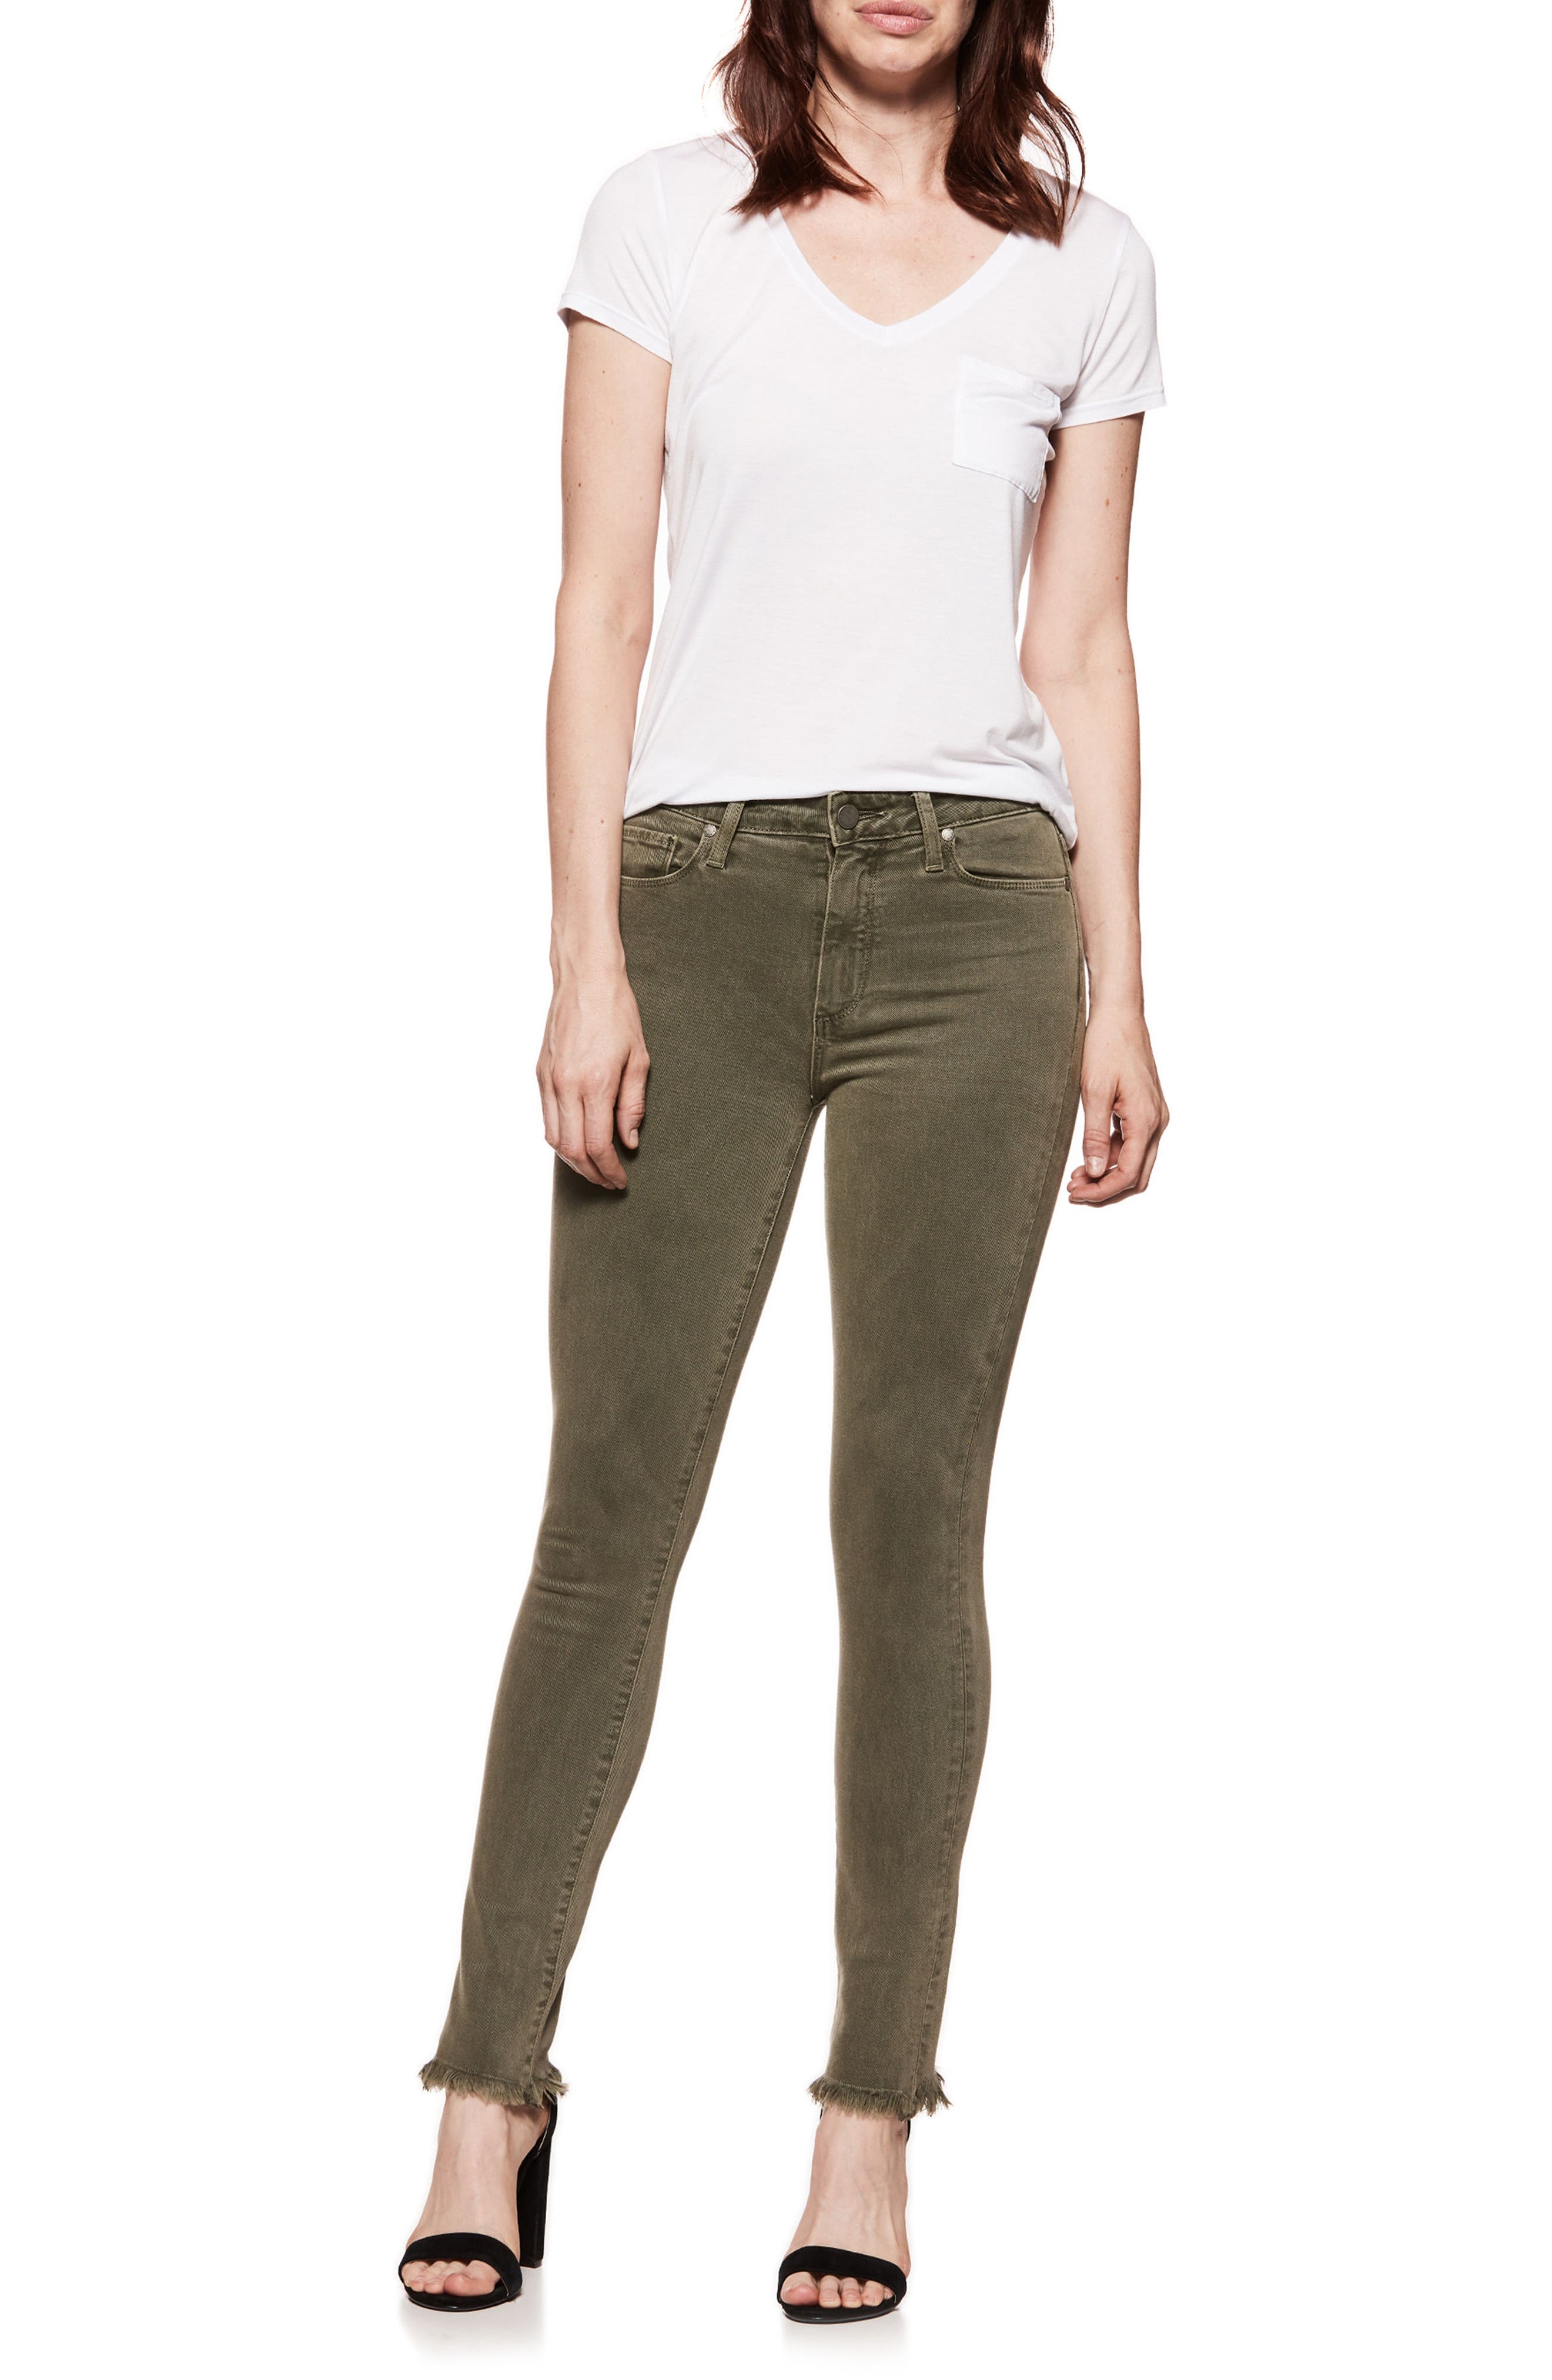 Hoxton High Waist Ankle Skinny Jeans,                             Alternate thumbnail 2, color,                             Vintage Green